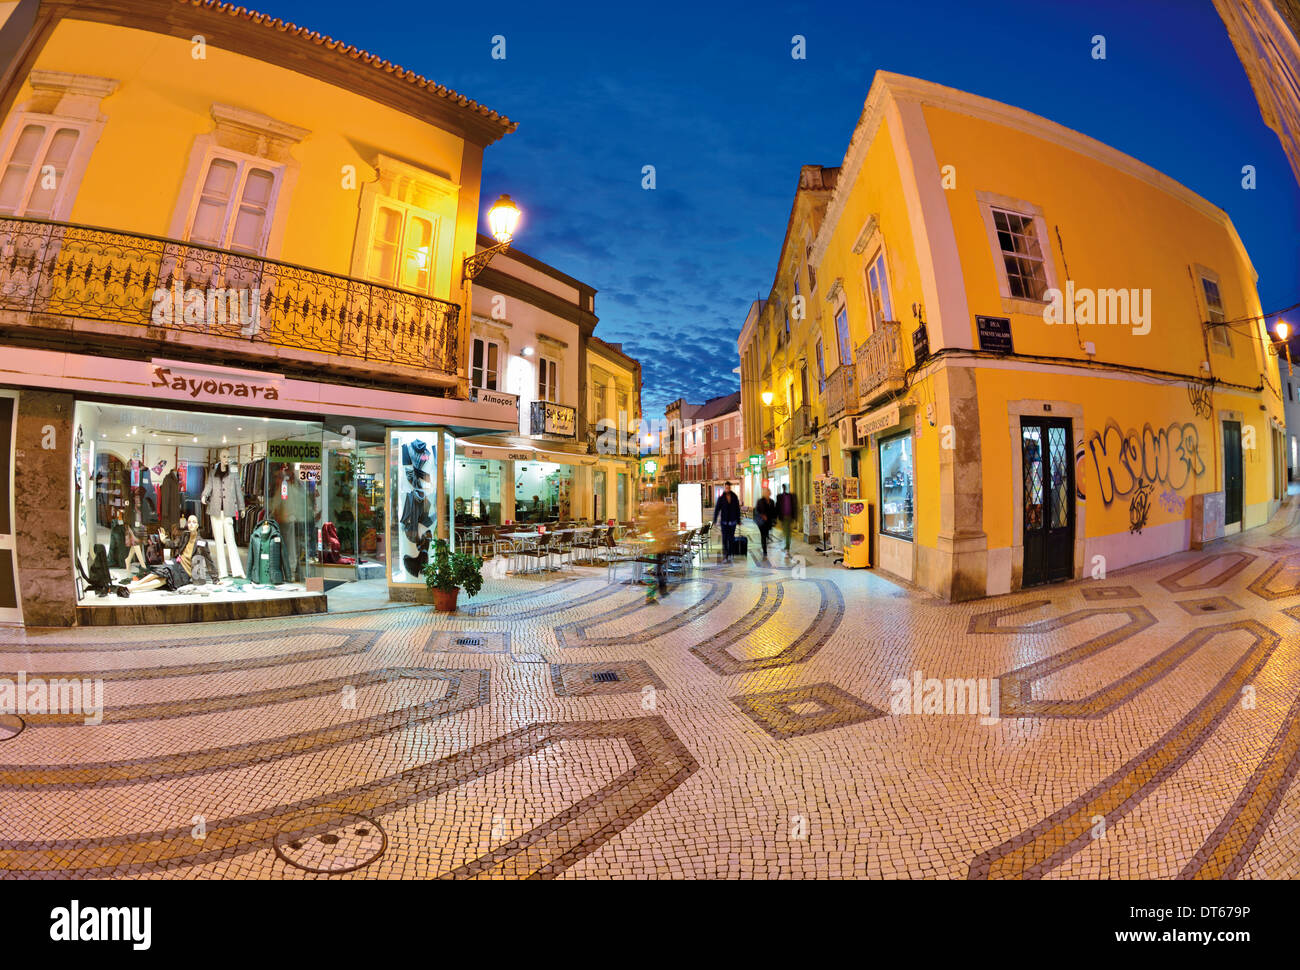 Portugal, Algarve: Nocturnal illumination of the historic center of Faro - Stock Image